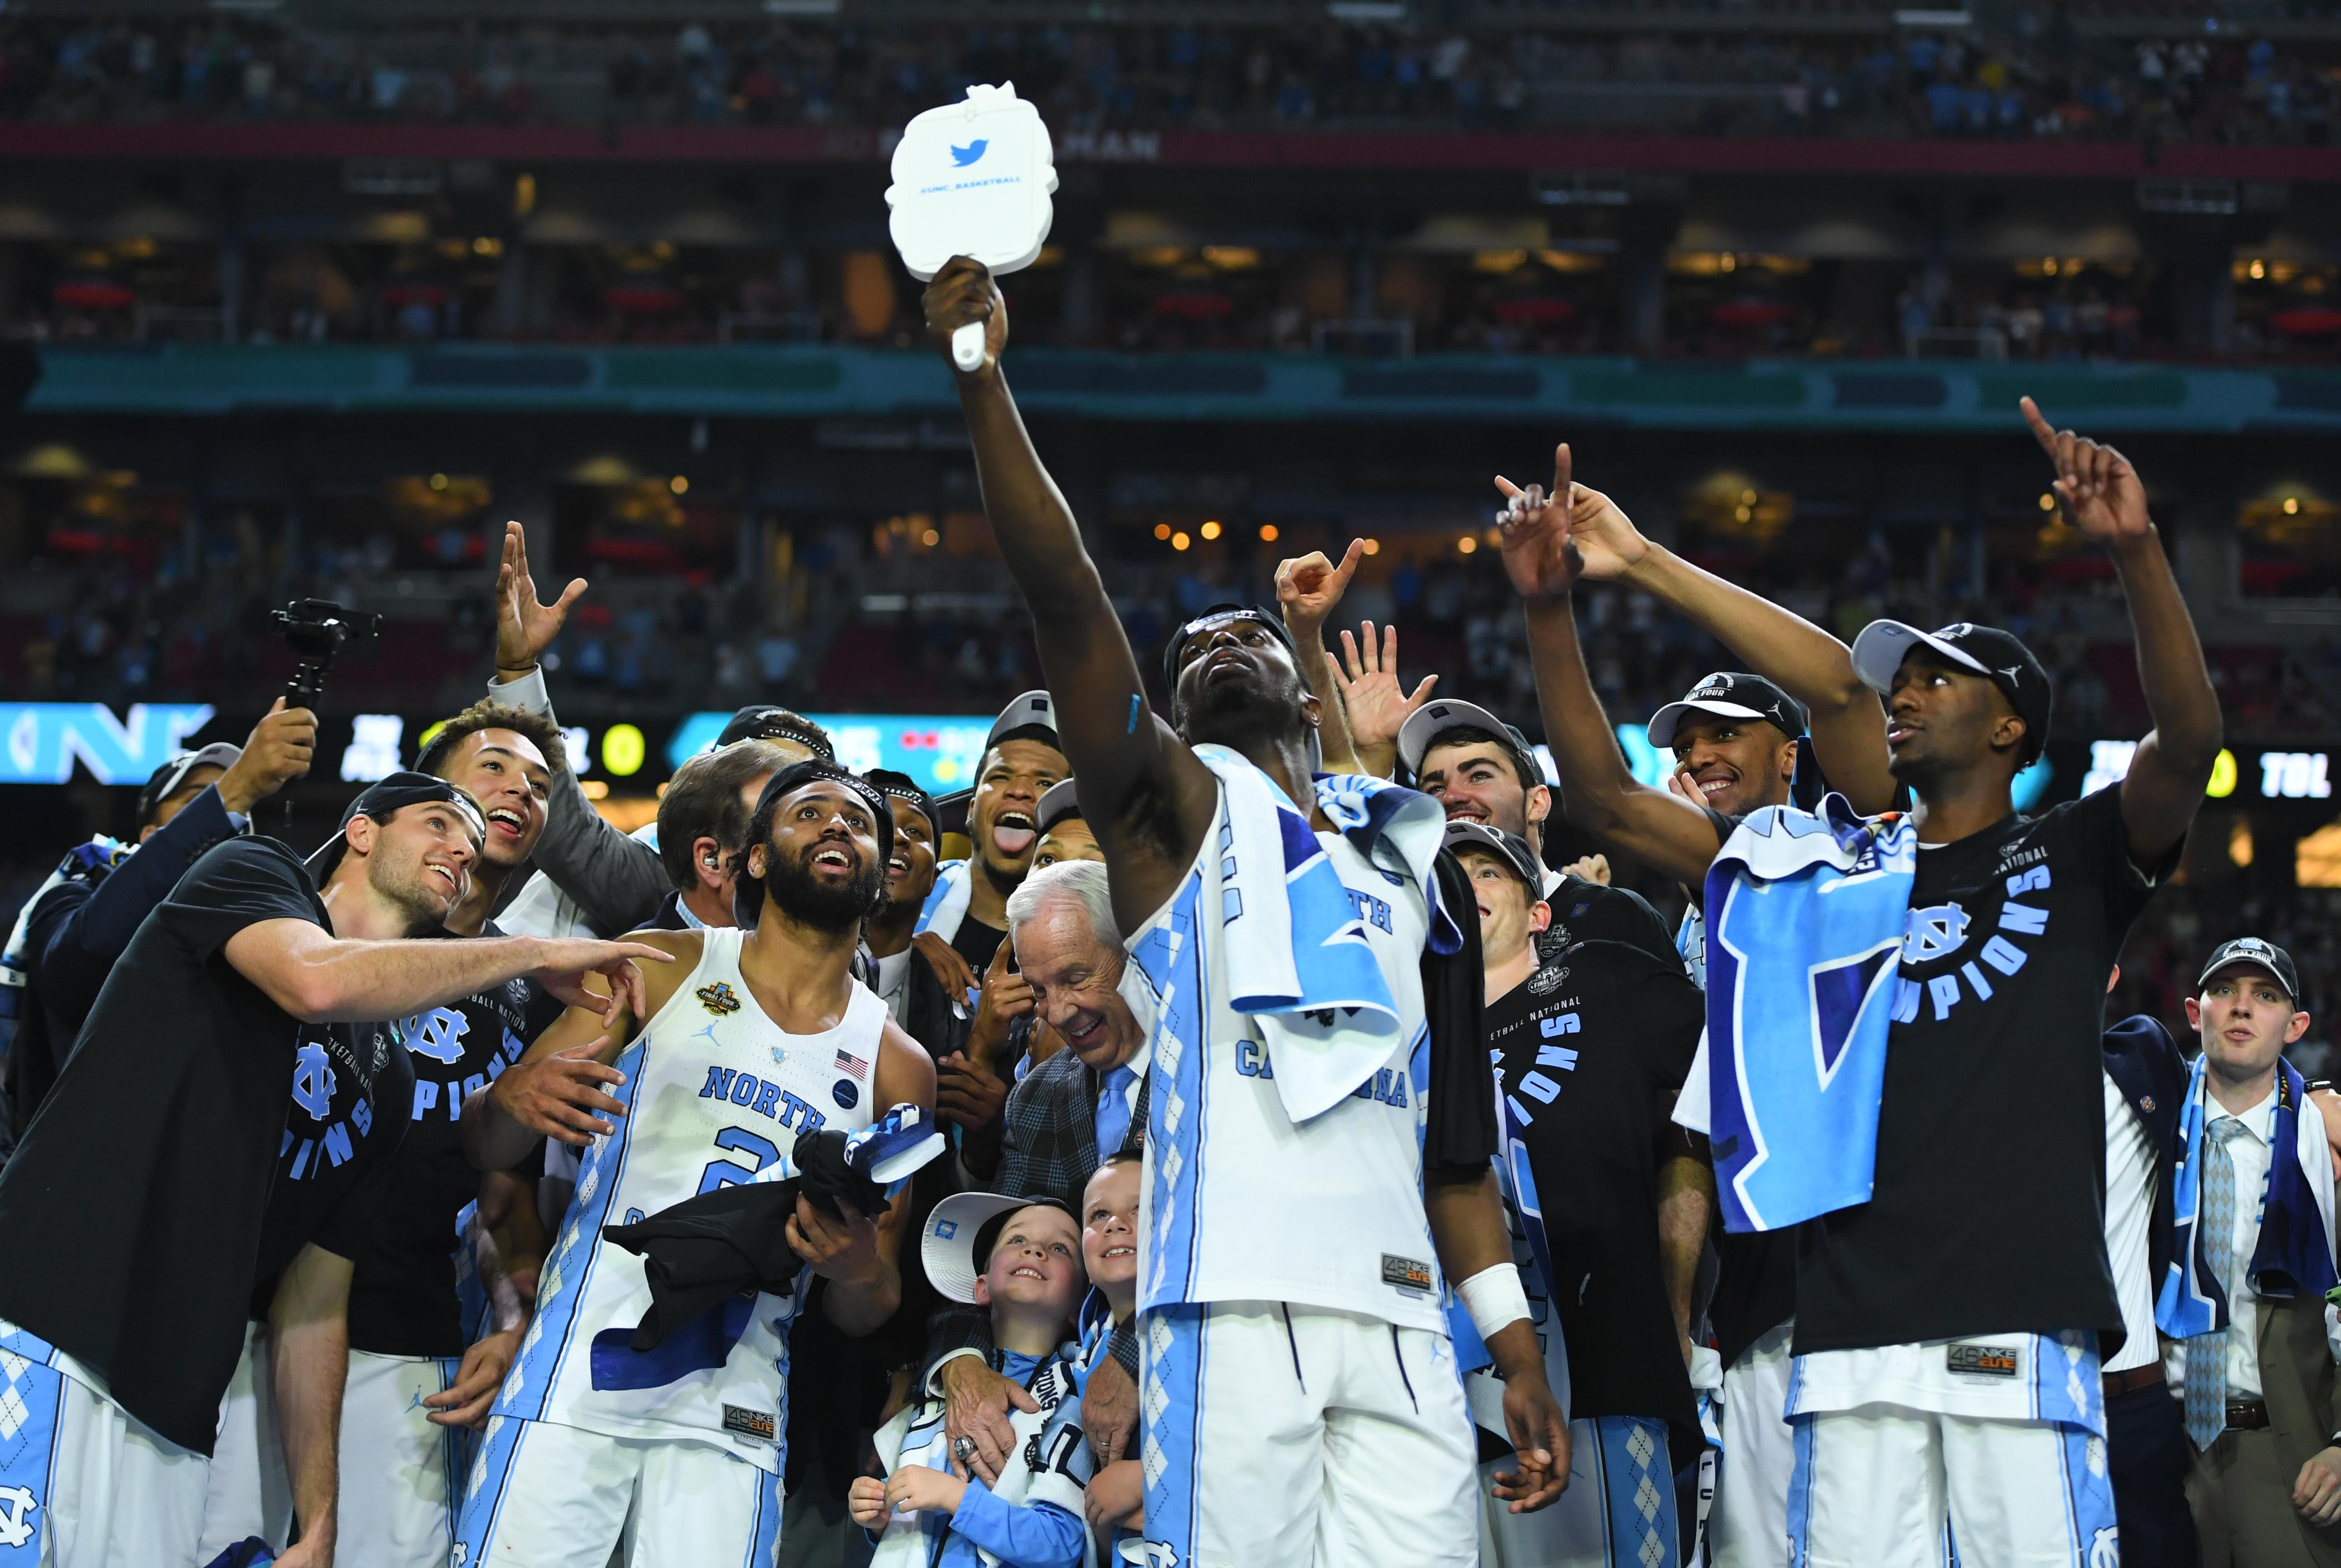 Can North Carolina Repeat In 2018? Duke, Kentucky, Louisville Favored To Win National Championship